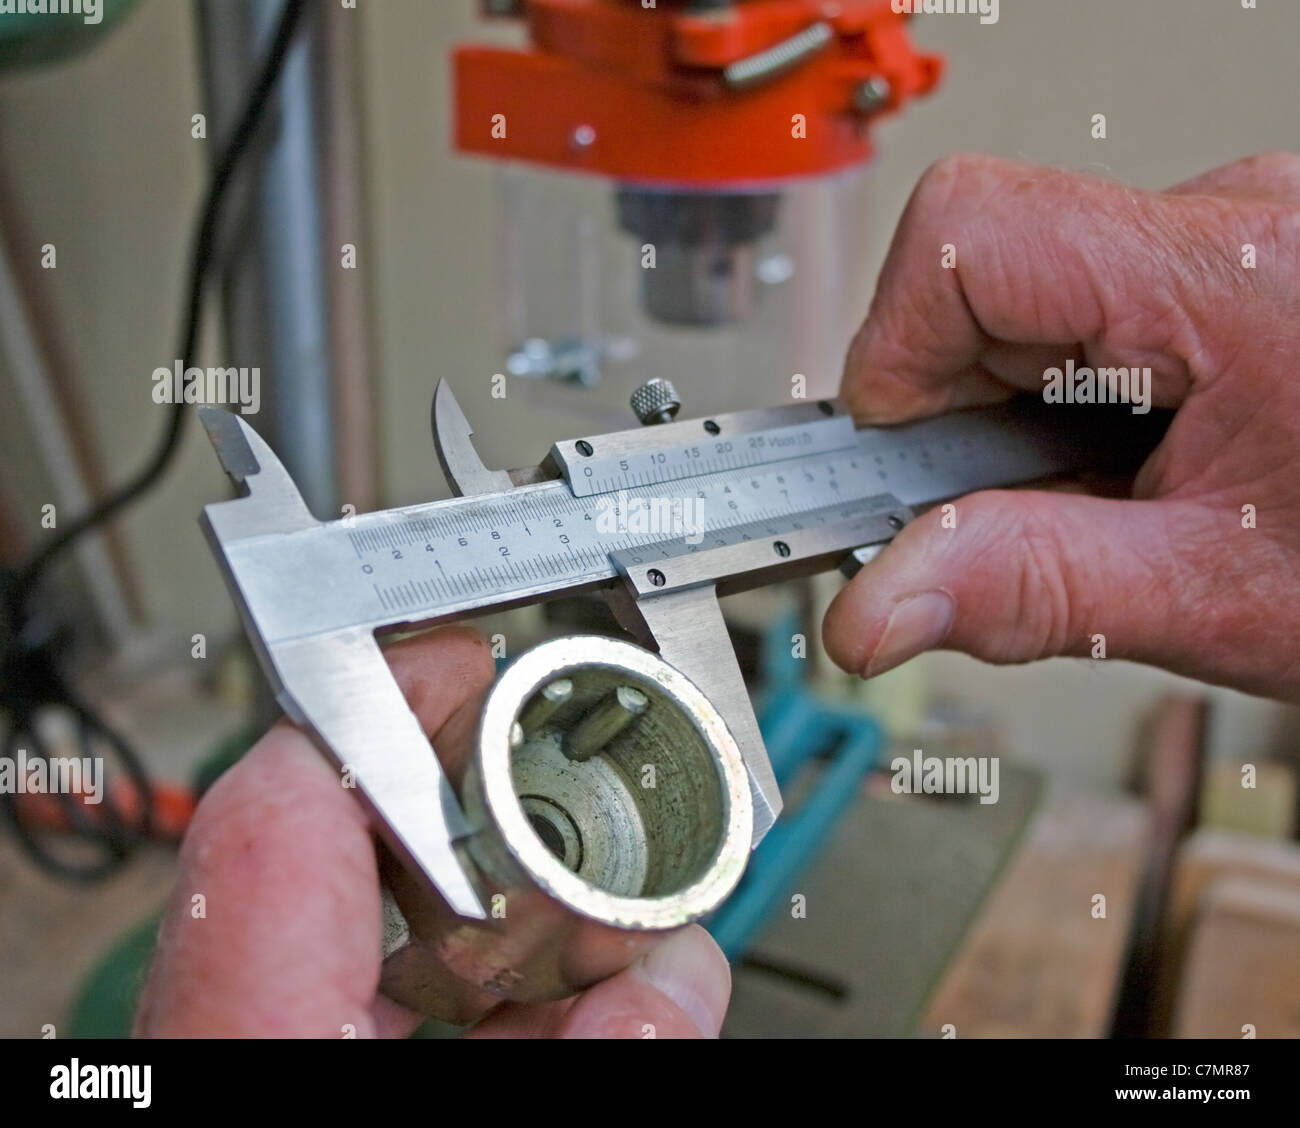 Measuring a socket with vernier callipers close up of hands - Stock Image